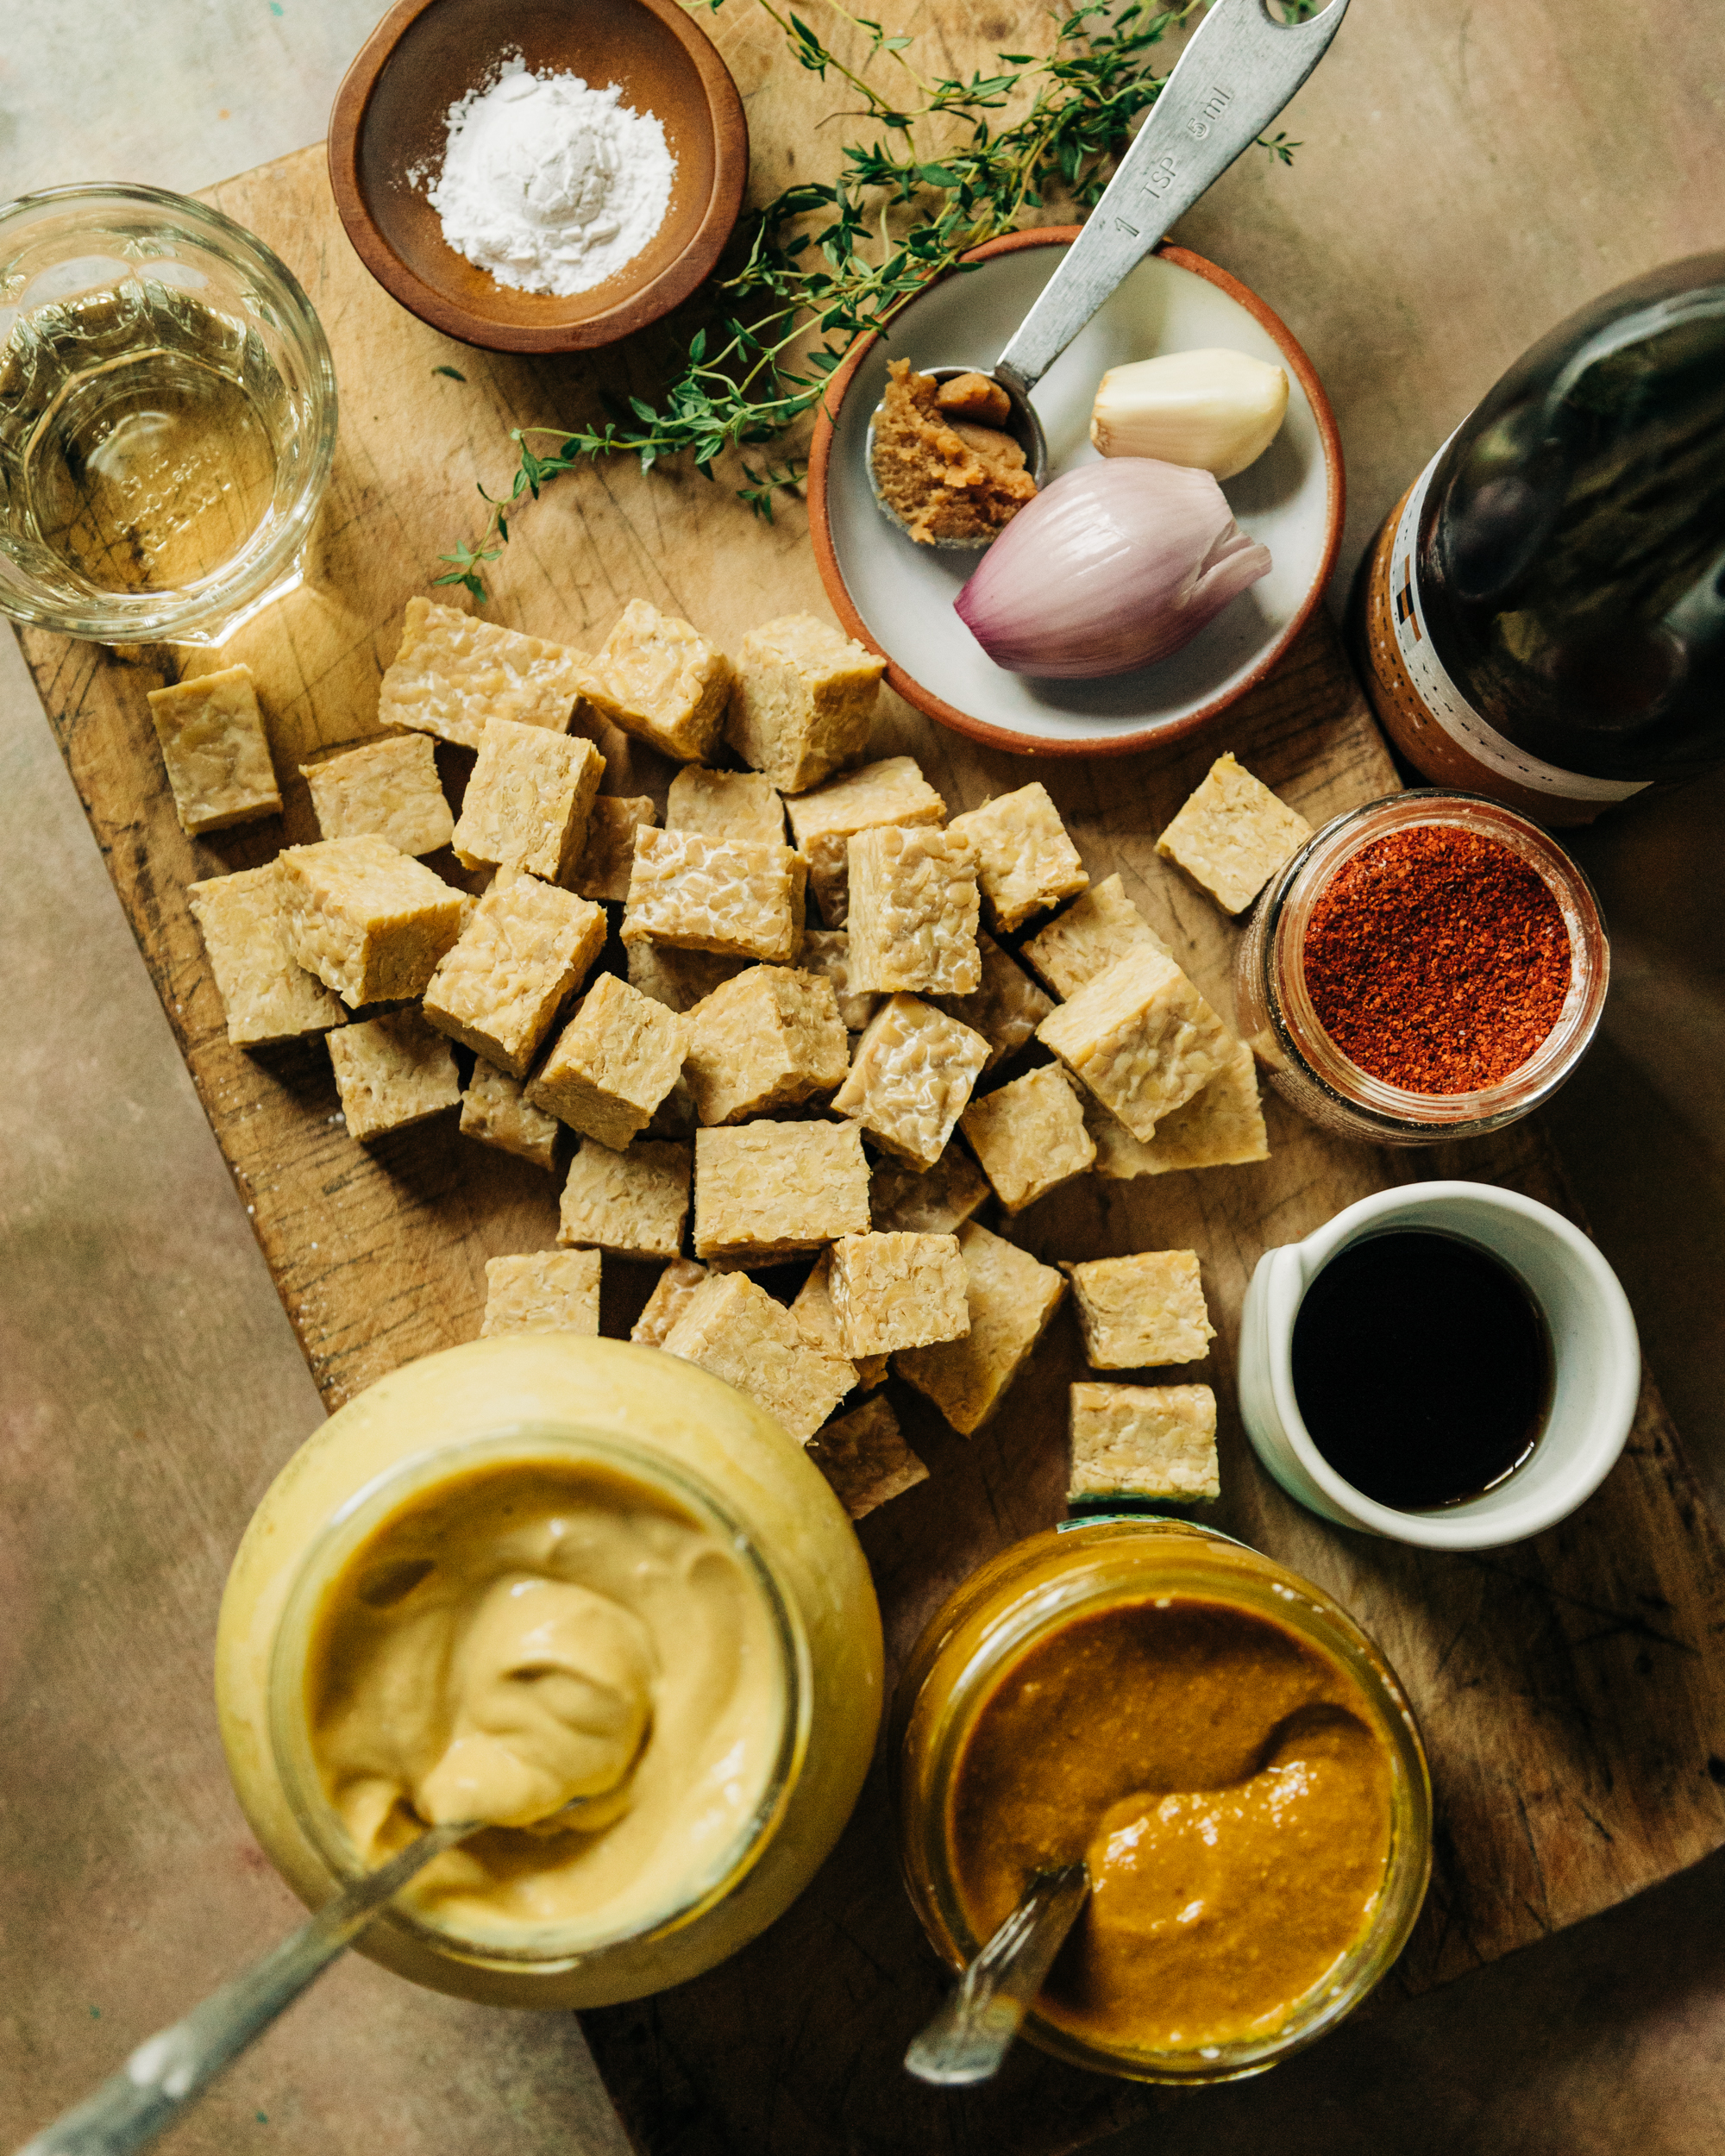 An overhead shot of ingredients used to make a saucy g;azed tempeh recipe.